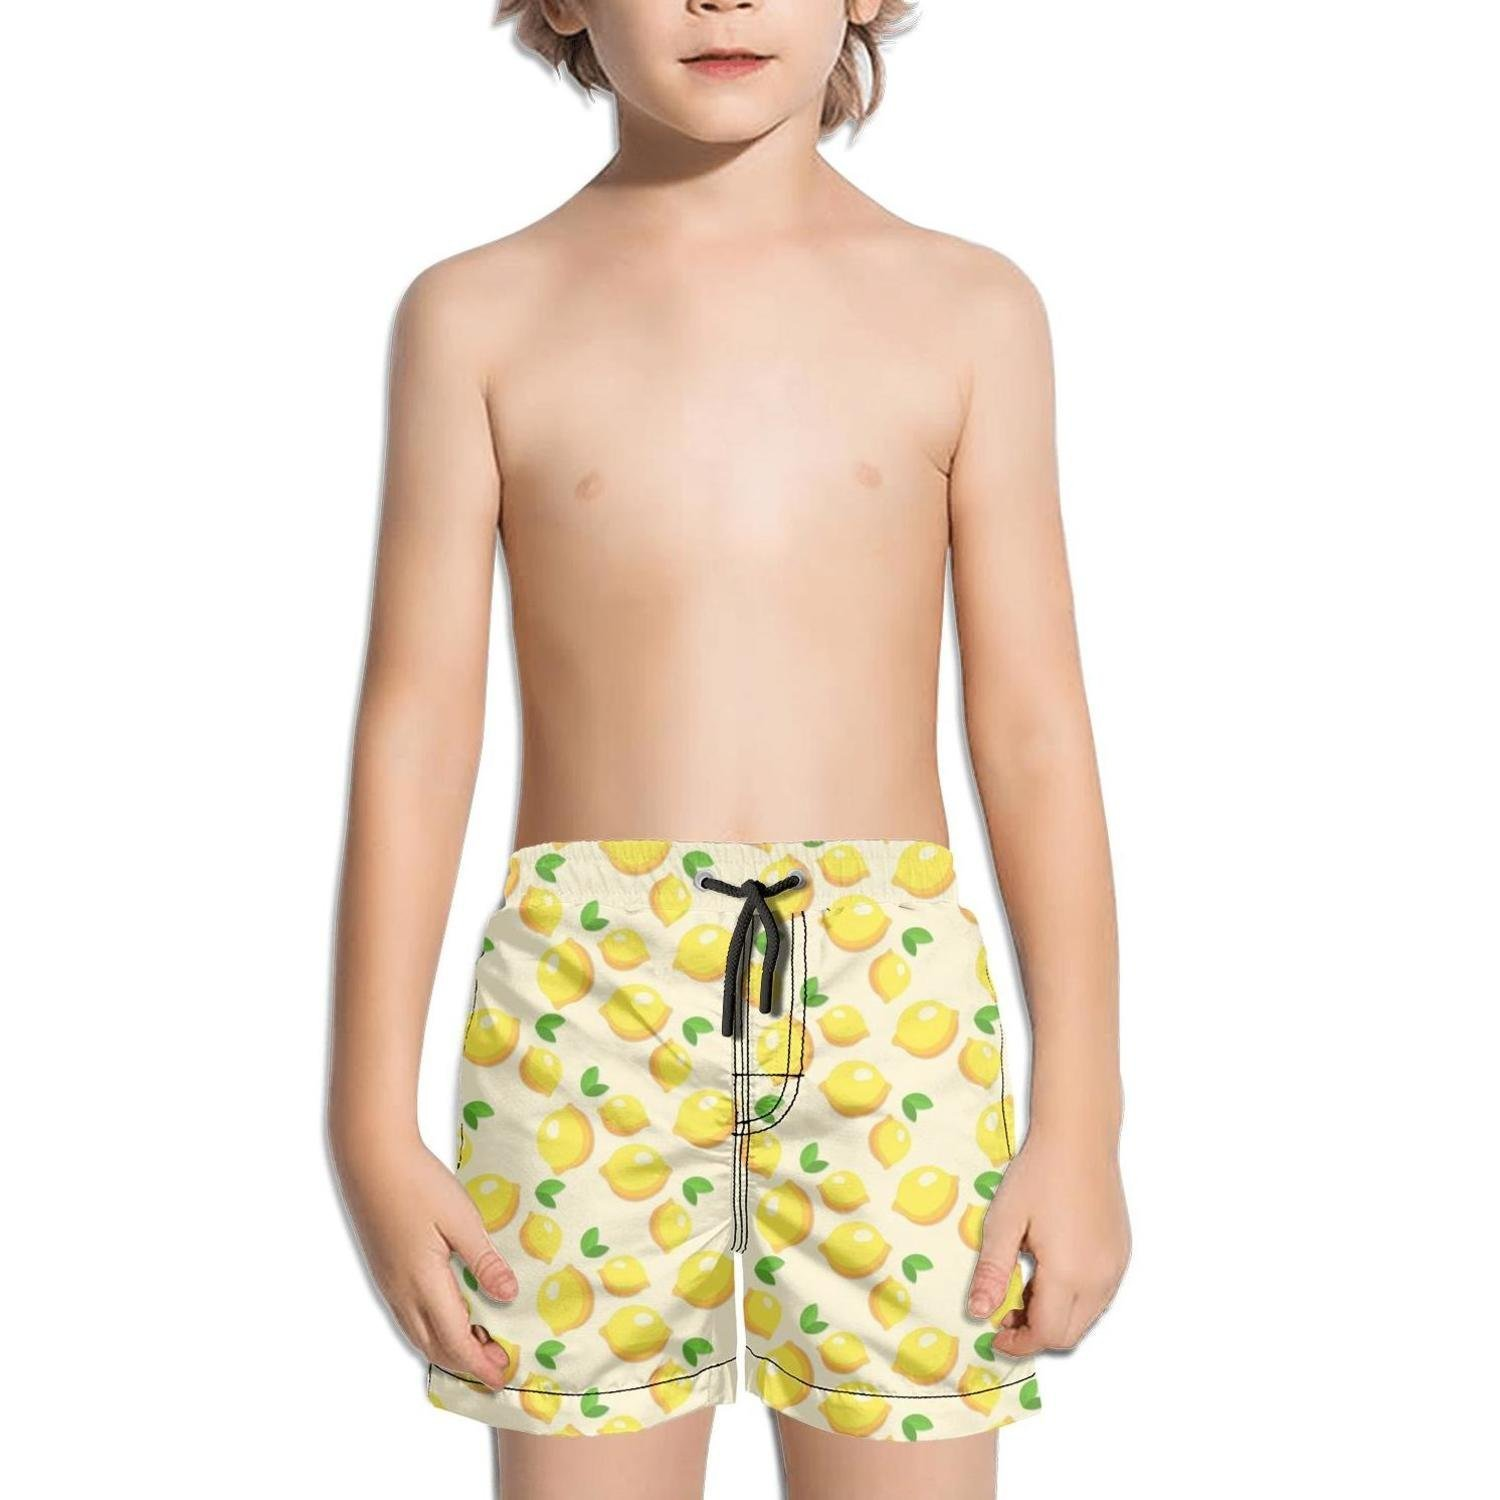 FullBo Summer Lemons Fruit Pattern Little Boys Short Swim Trunks Quick Dry Beach Shorts